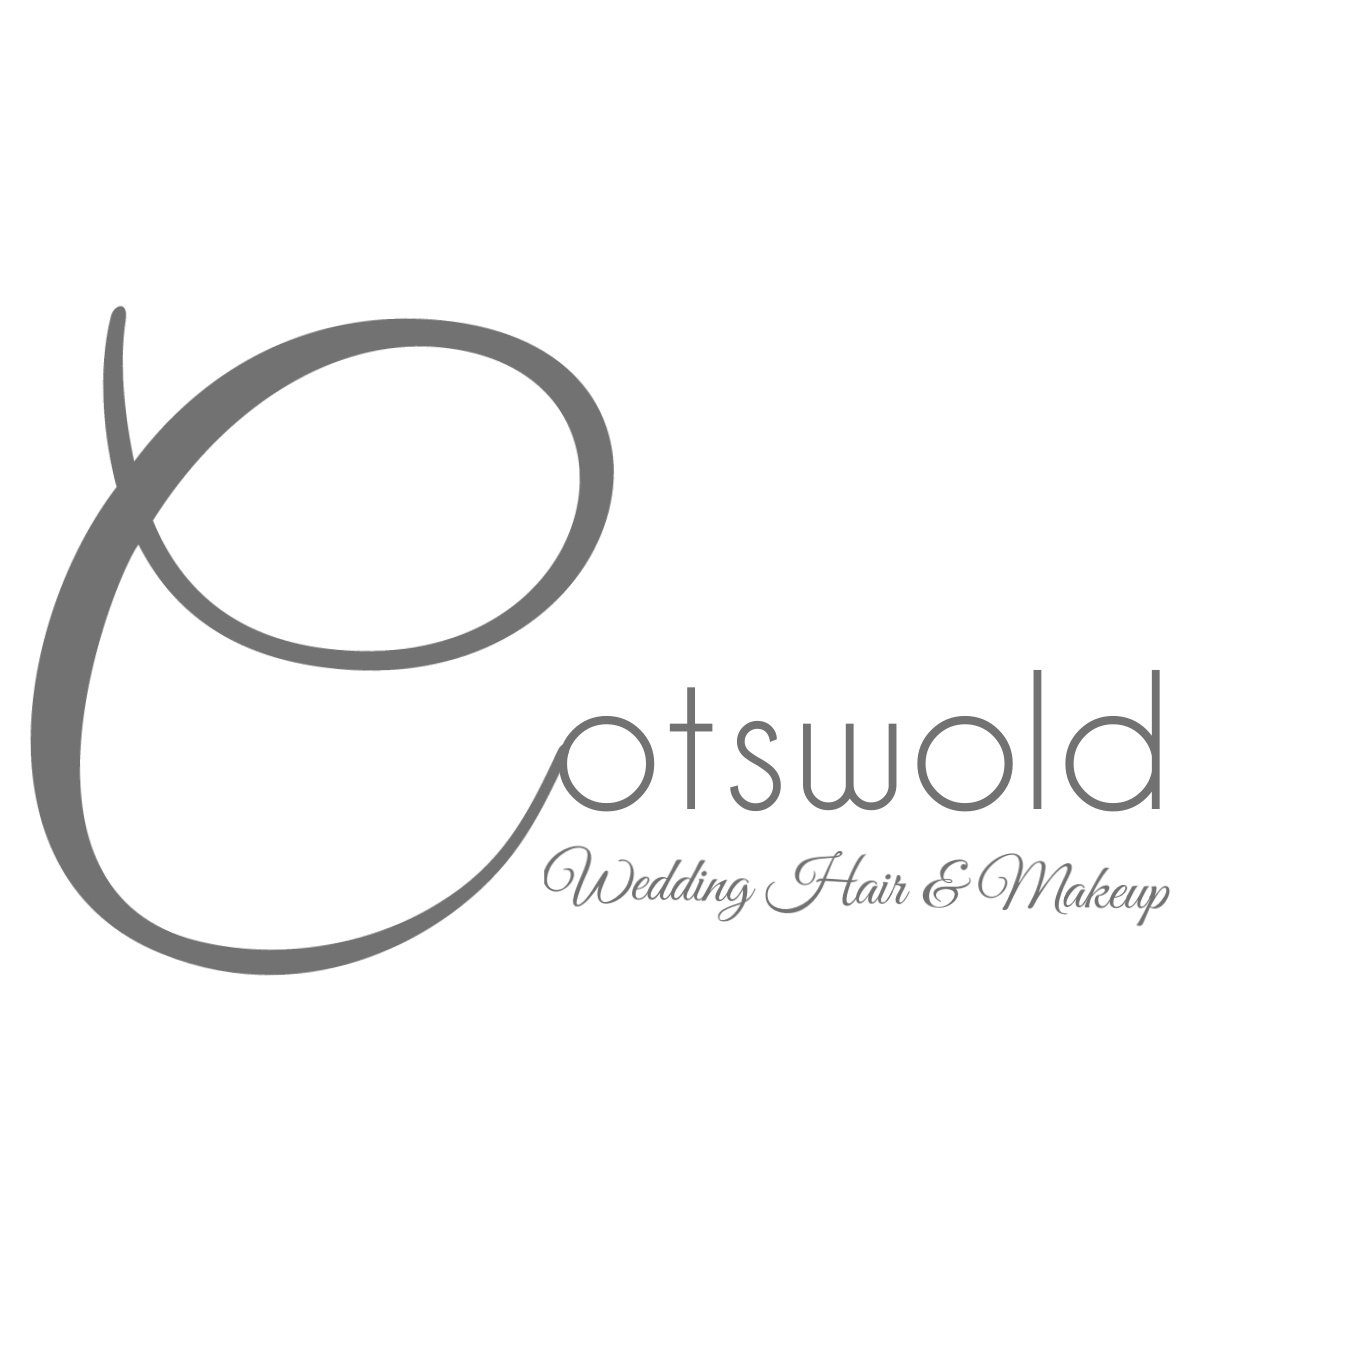 Cotswold Wedding Hair & Makeup.